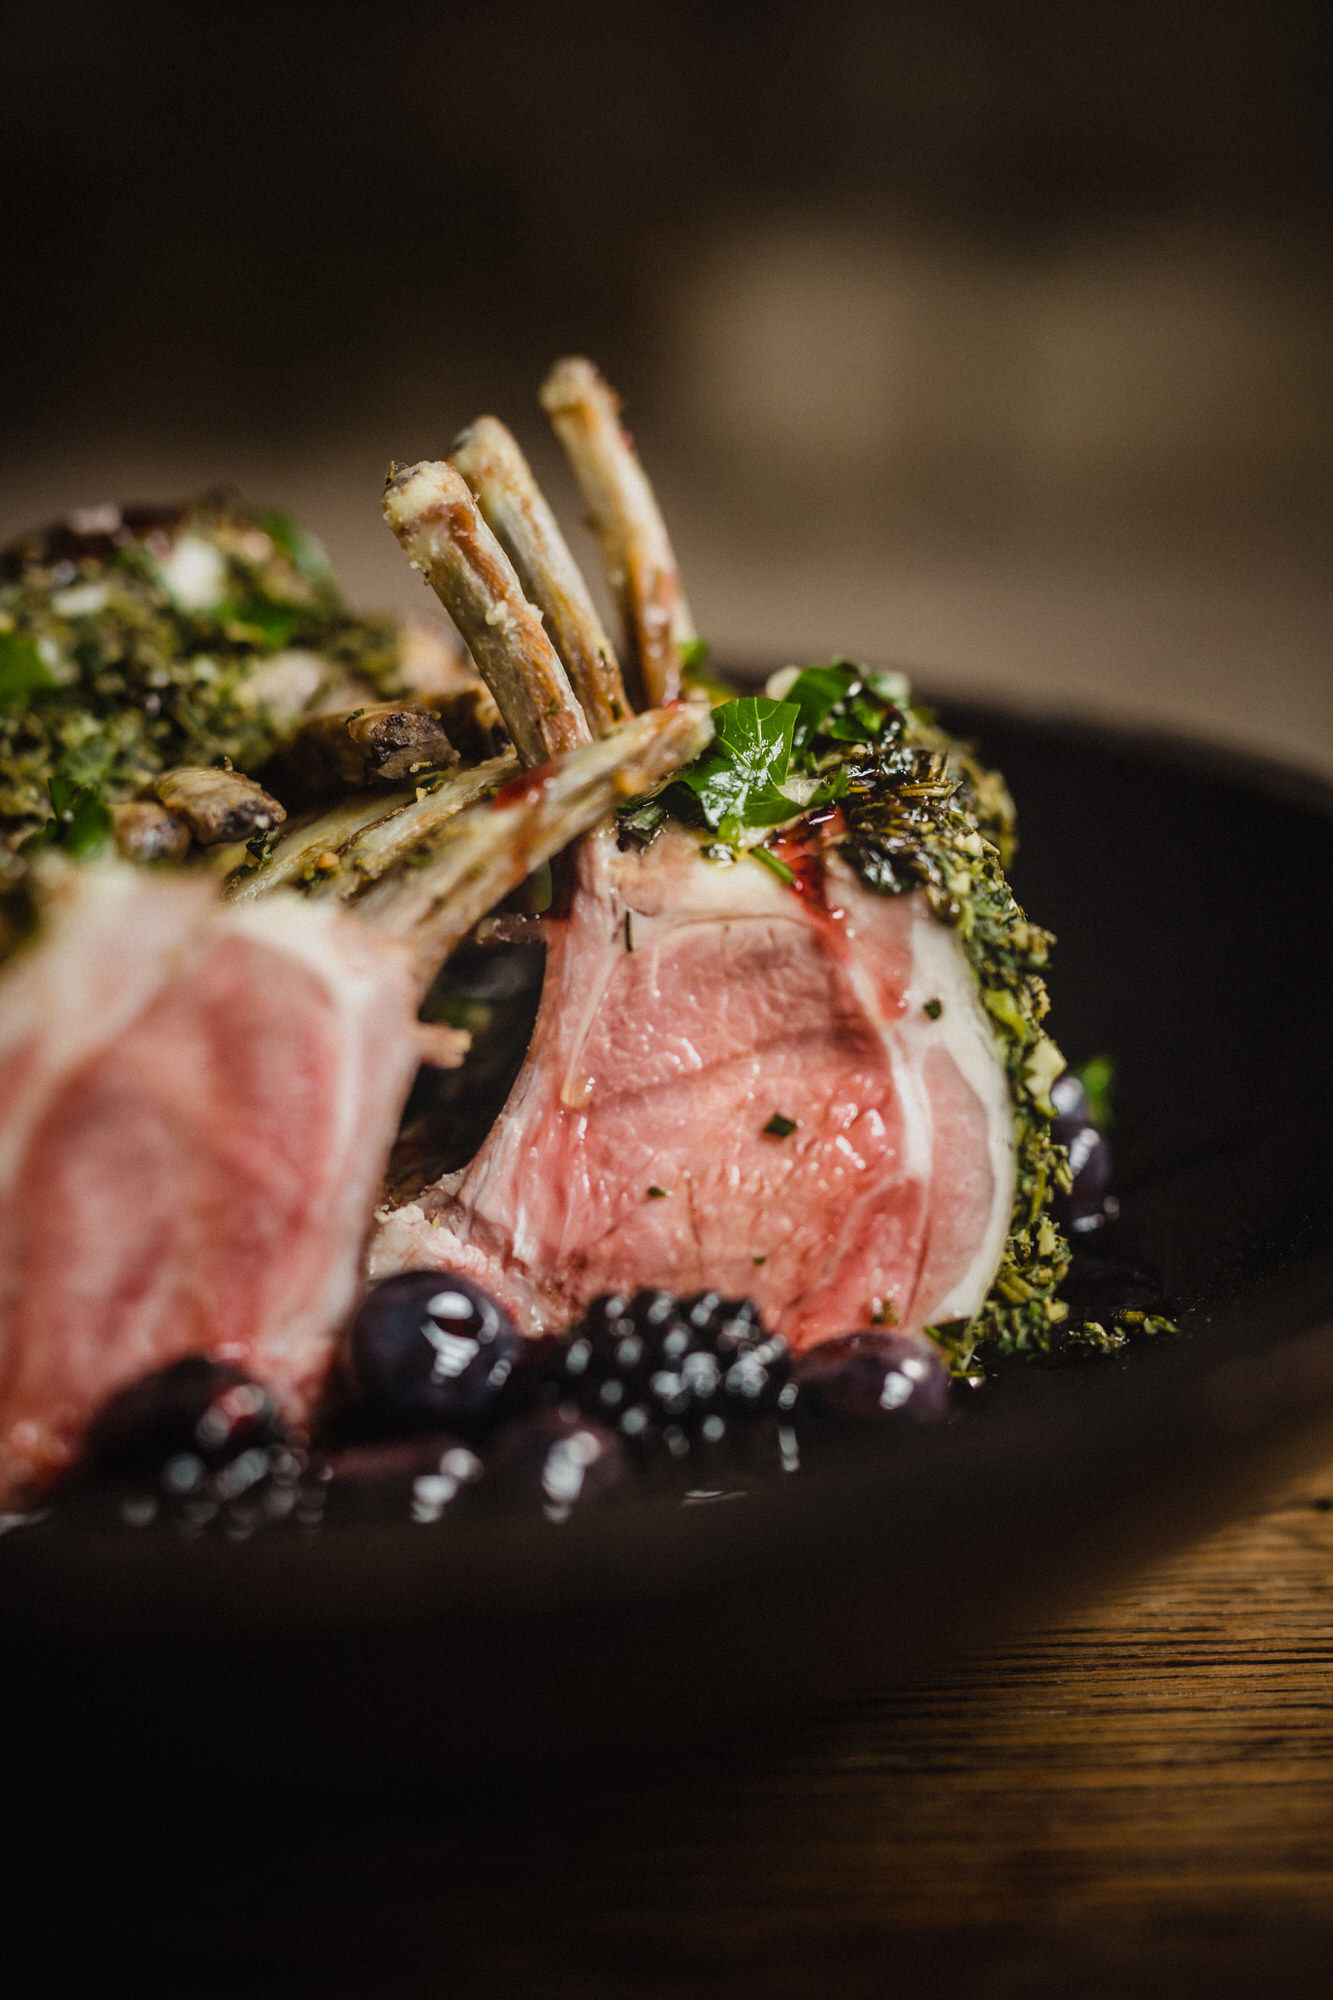 glasgow-caterer-reagan-hallett-rack-of-lamb-berries.jpg